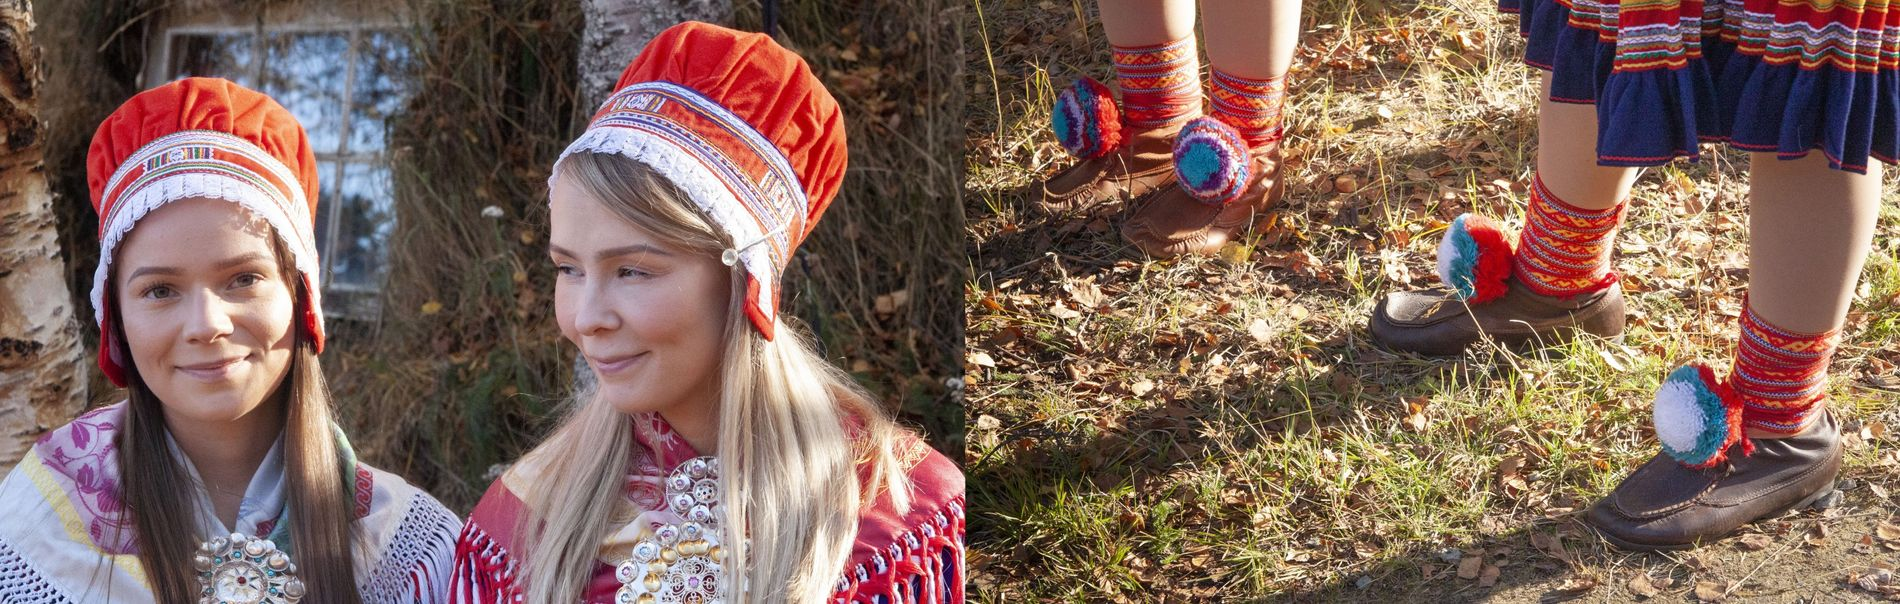 The Oskal sisters, Elin (left) and Anne wearing the Gákti, or traditional Sami clothing. Used for ...